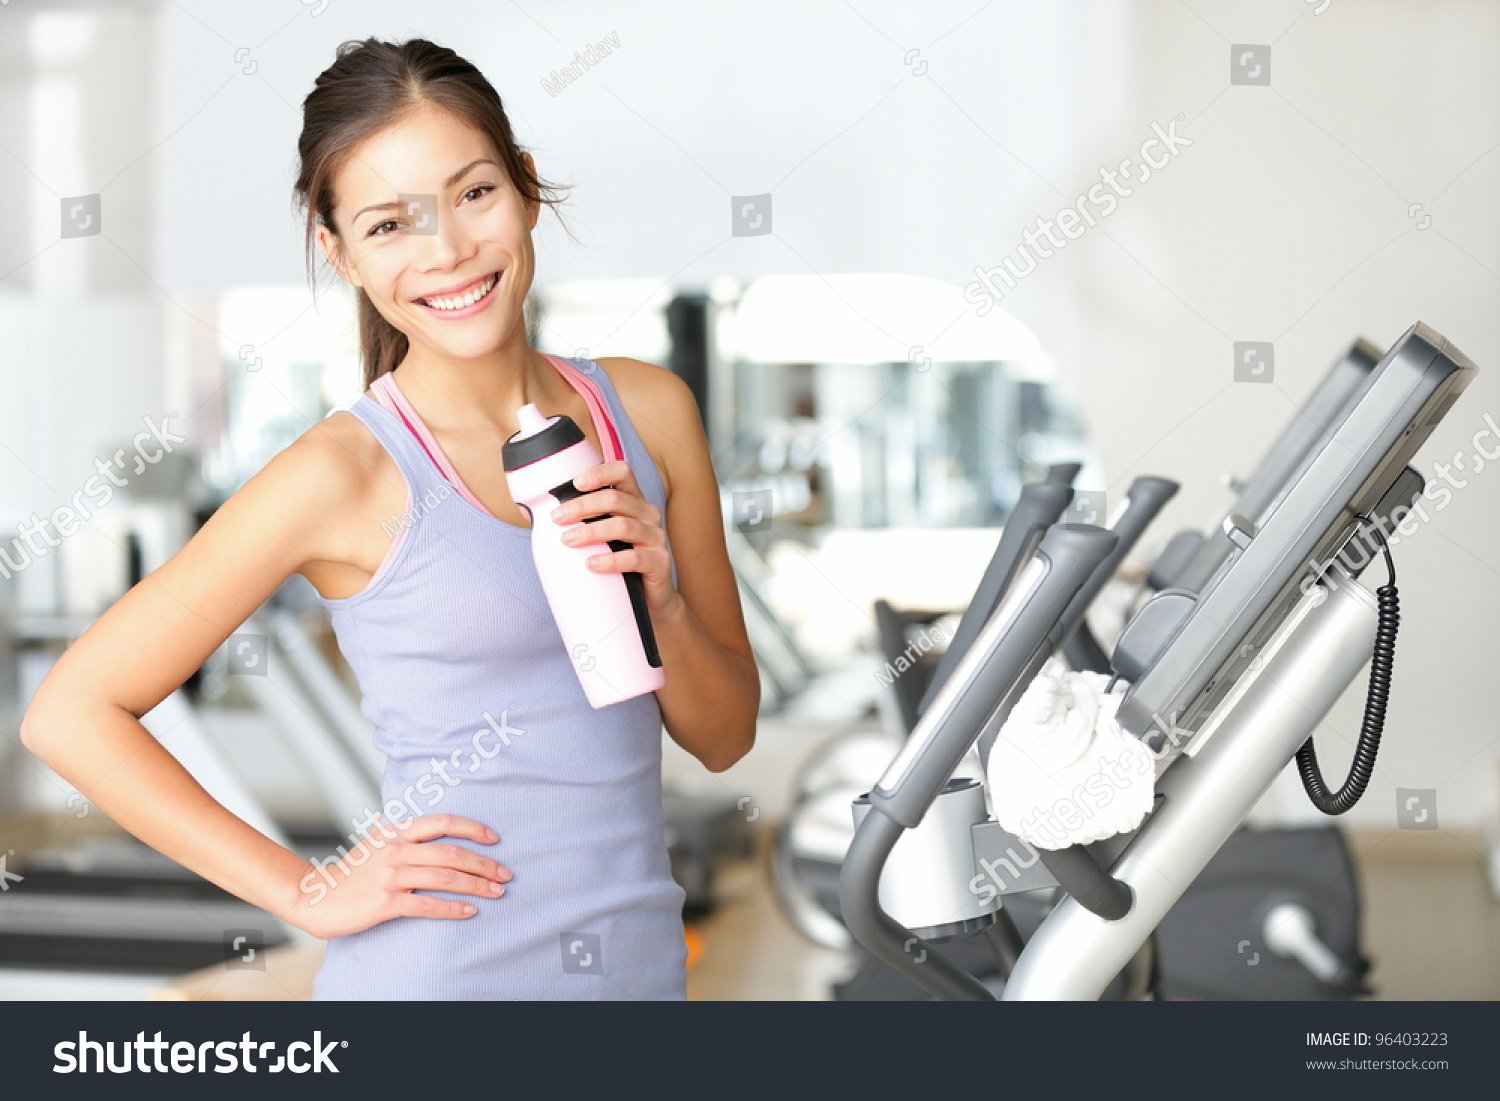 Royalty free gym woman working out drinking water 96403223 stock gym woman working out drinking water smiling happy standing by moonwalker fitness machines beautiful fit sciox Choice Image